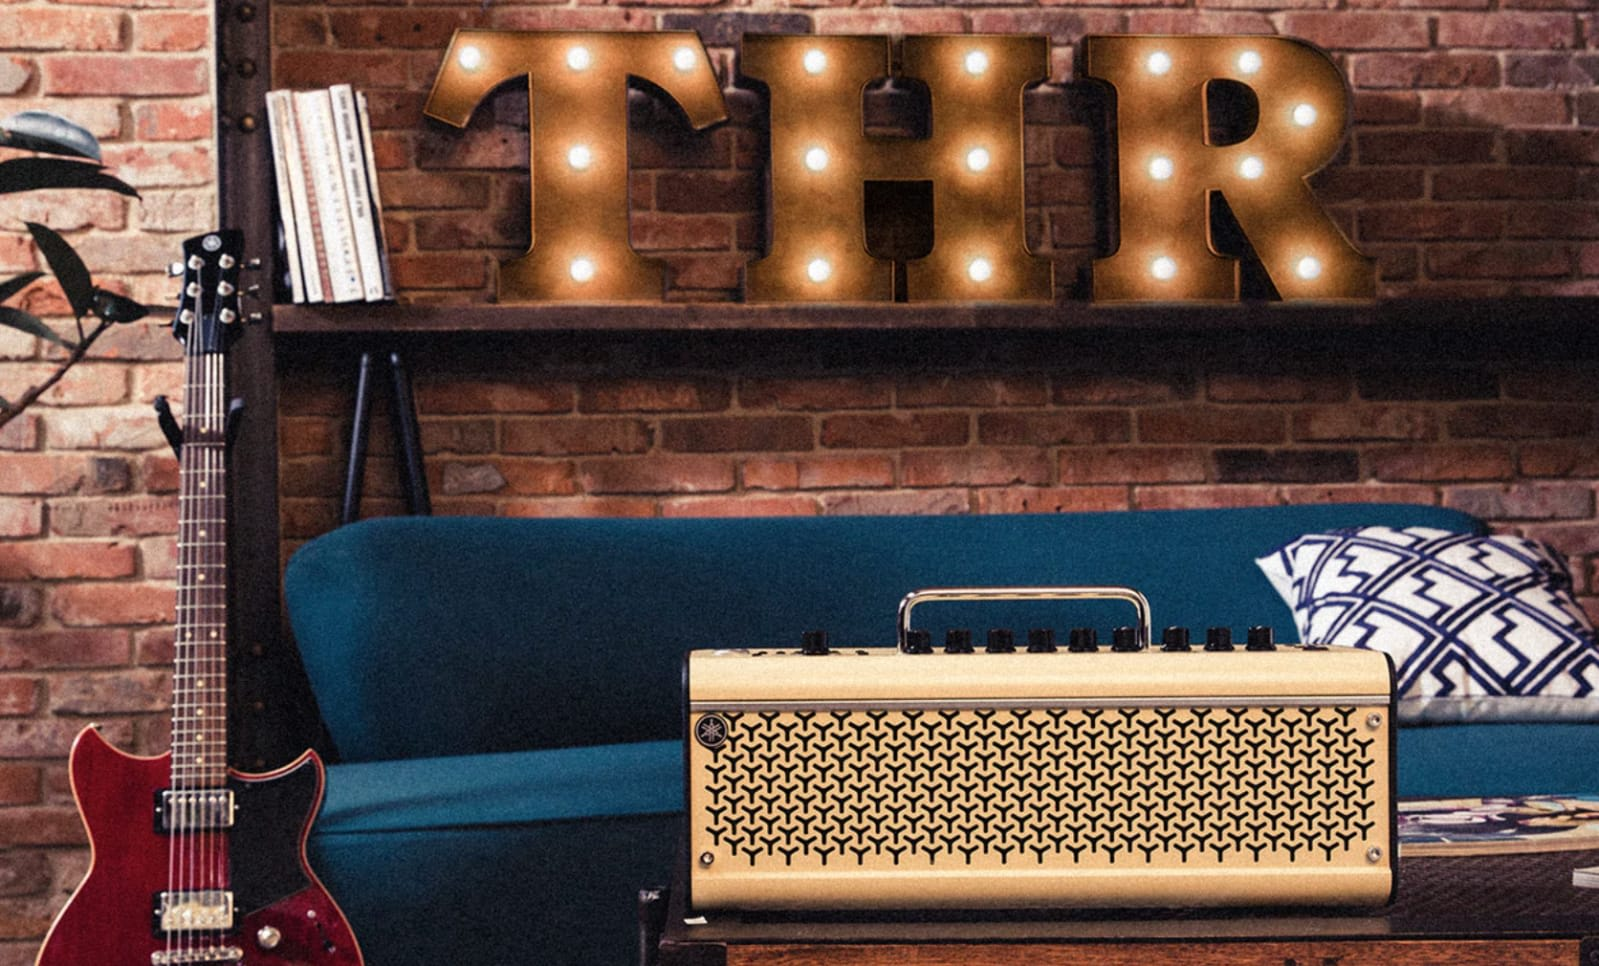 Yamaha updates its THR desktop guitar amps for the first time in years